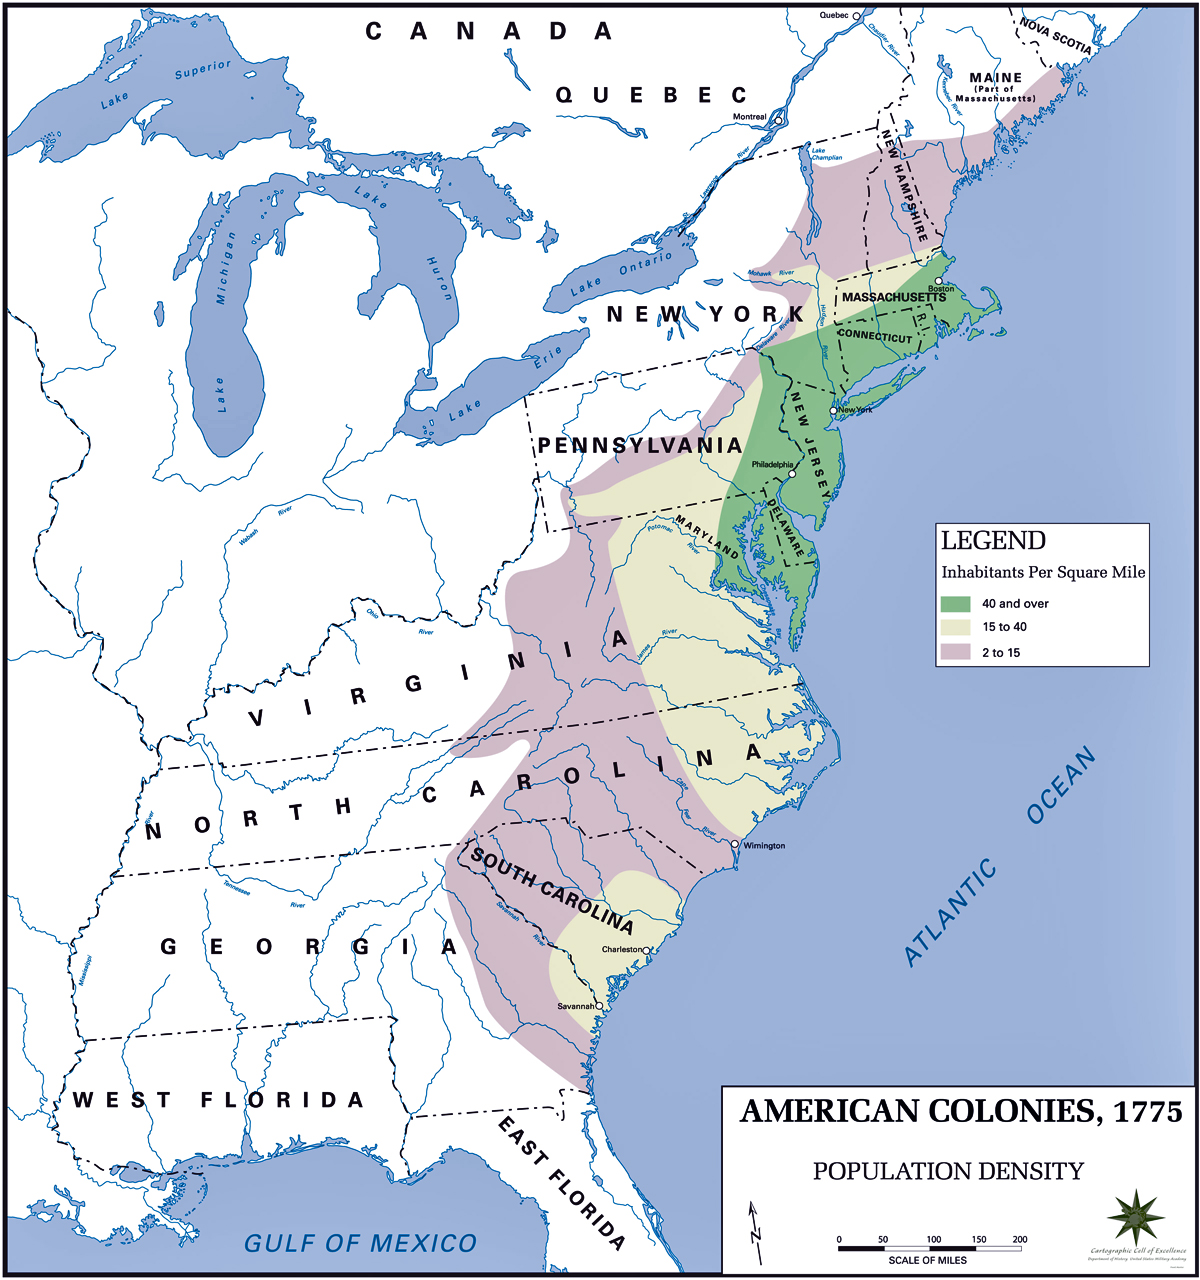 map of the american colonies population density 1775